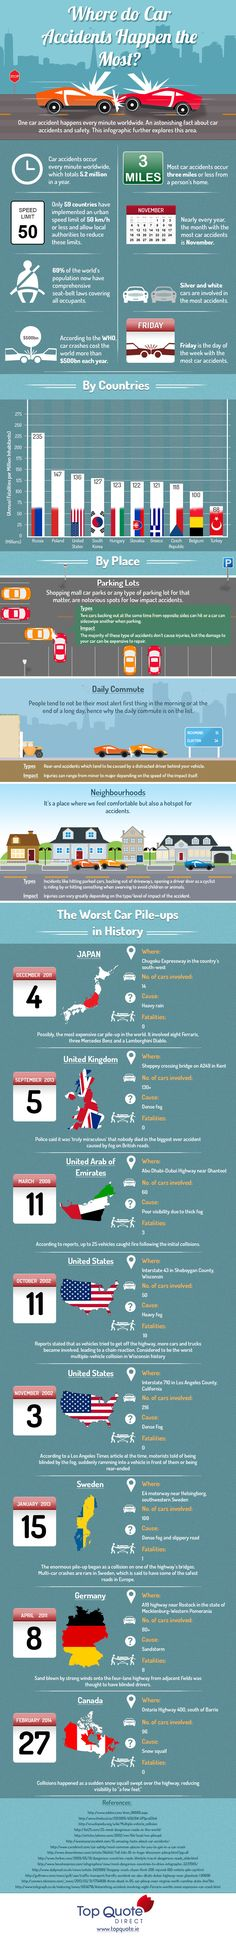 Astonishing Facts about Car Accidents and Safety #infographic #Driving #CarAccidents